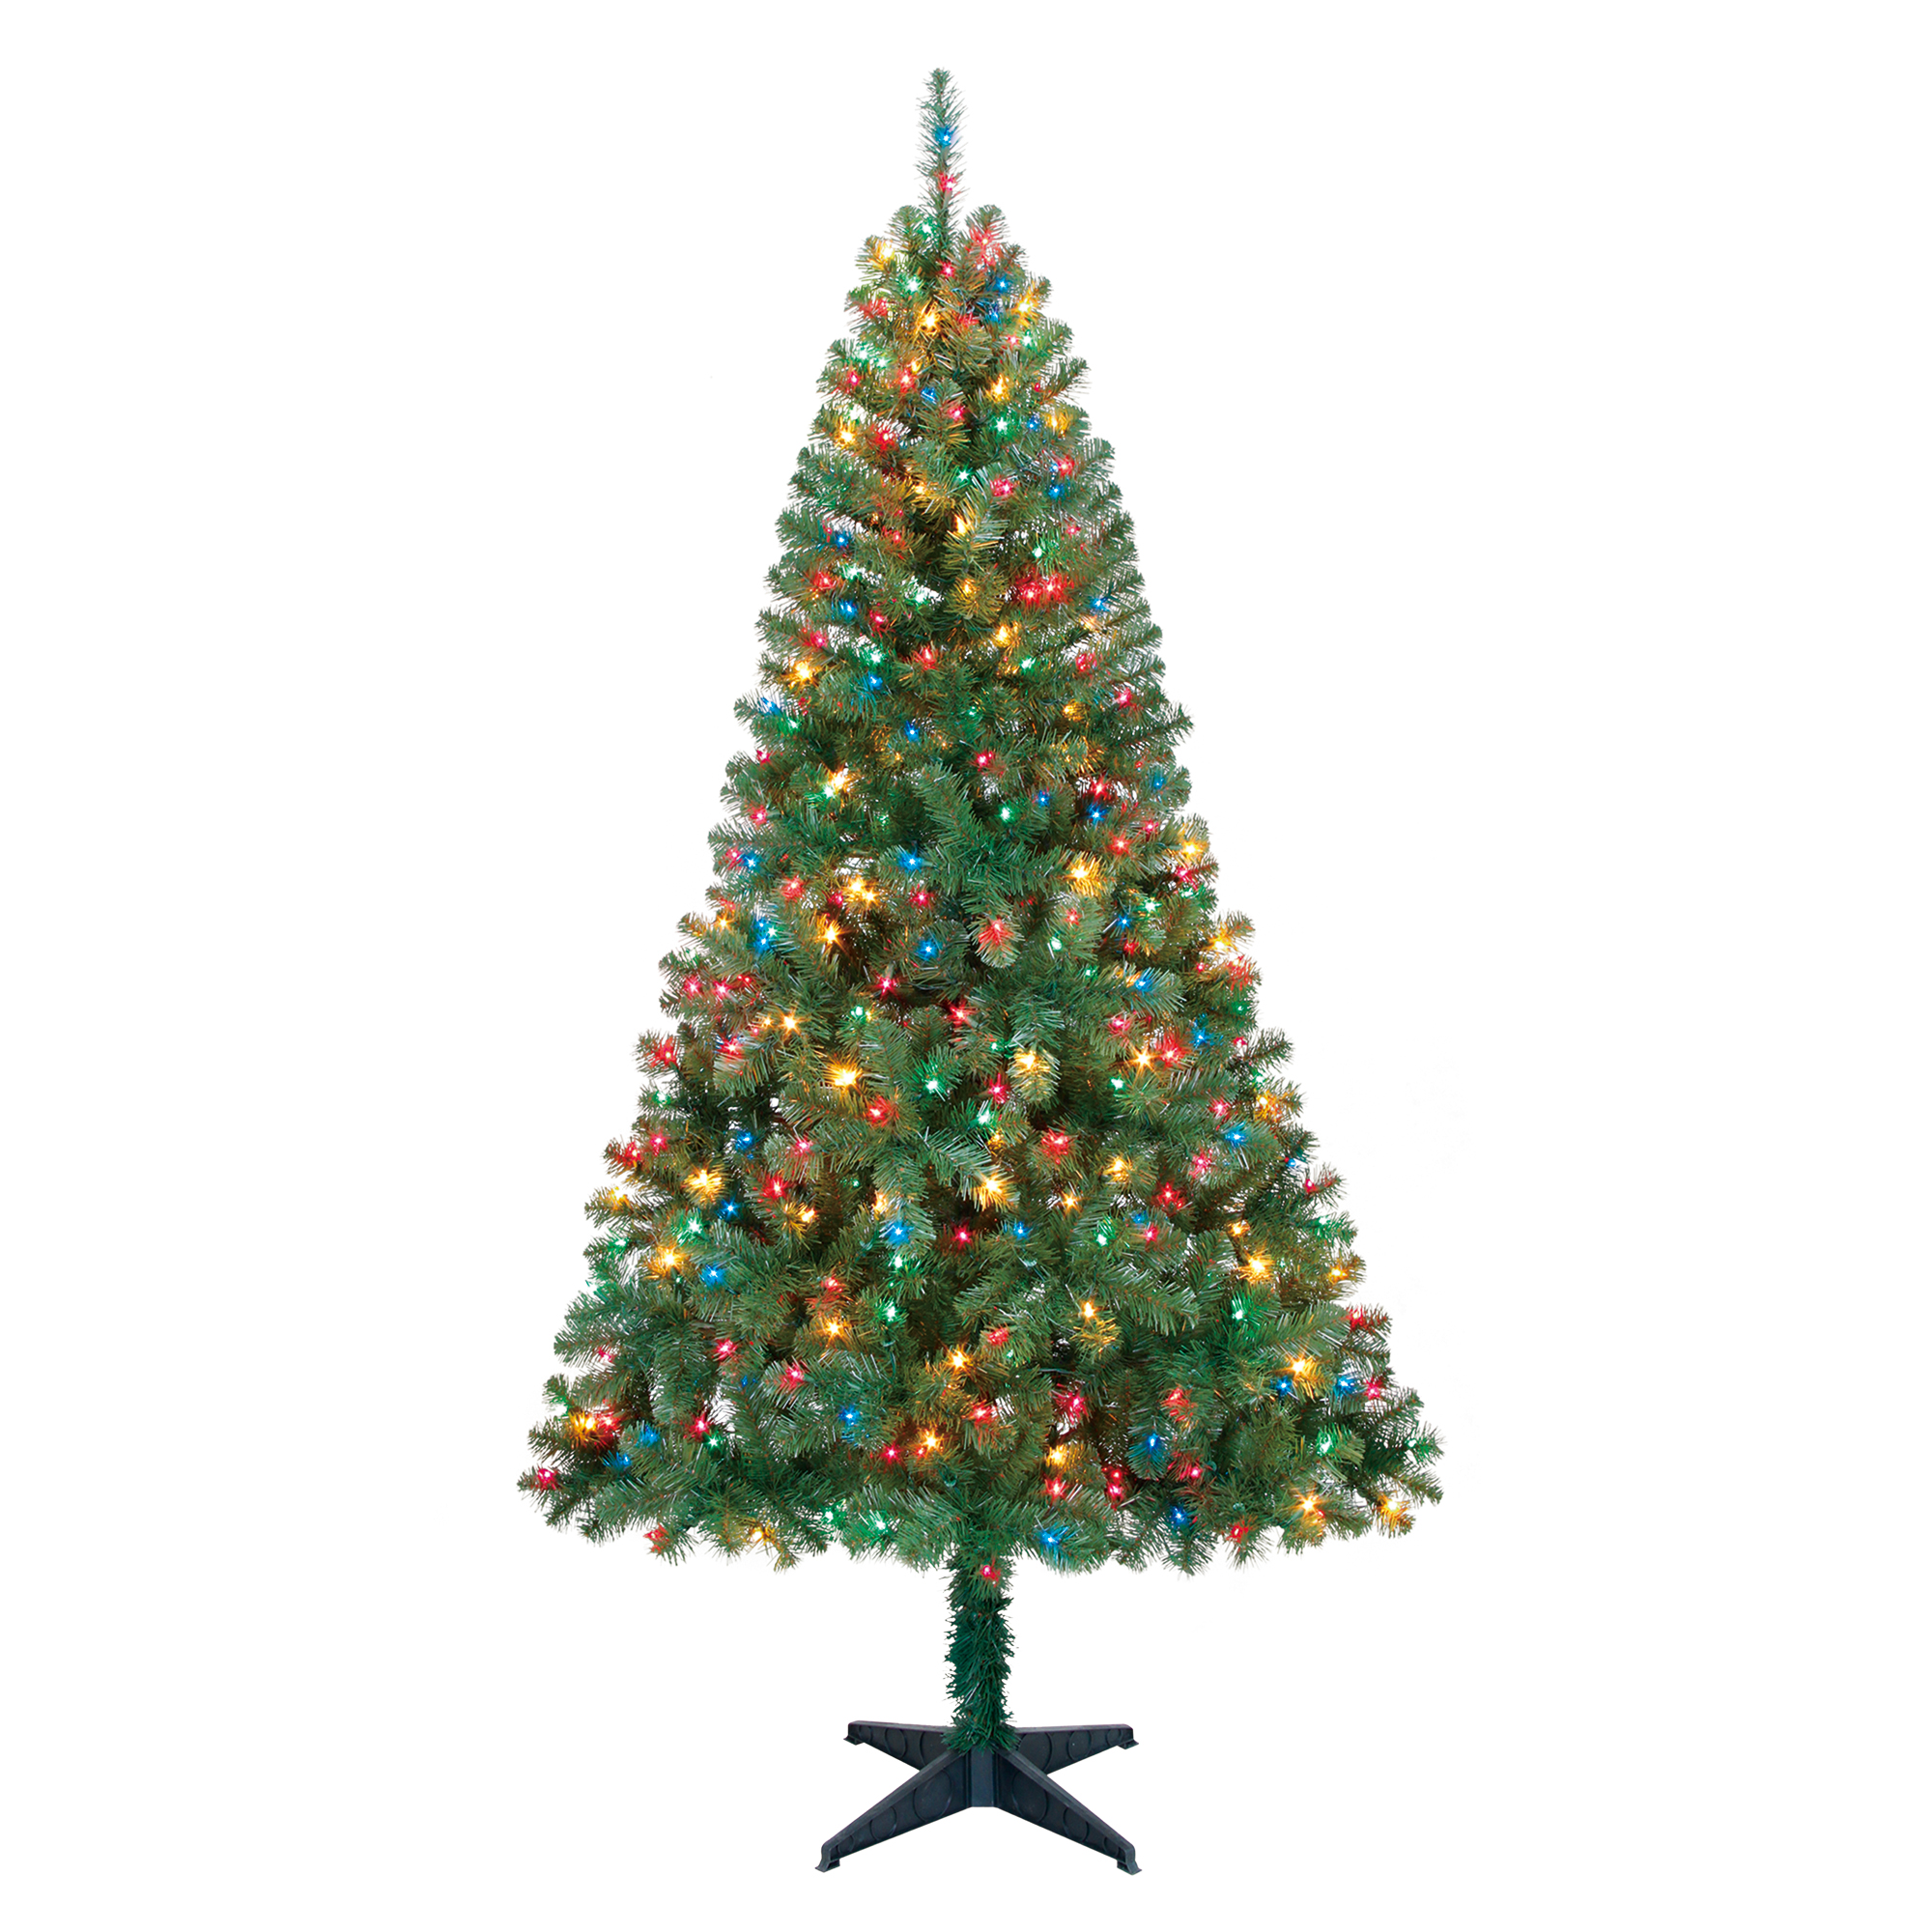 Holiday Time 6.5ft Pre-Lit Madison Pine Artificial Christmas Tree with 350 Multicolored Lights - Green